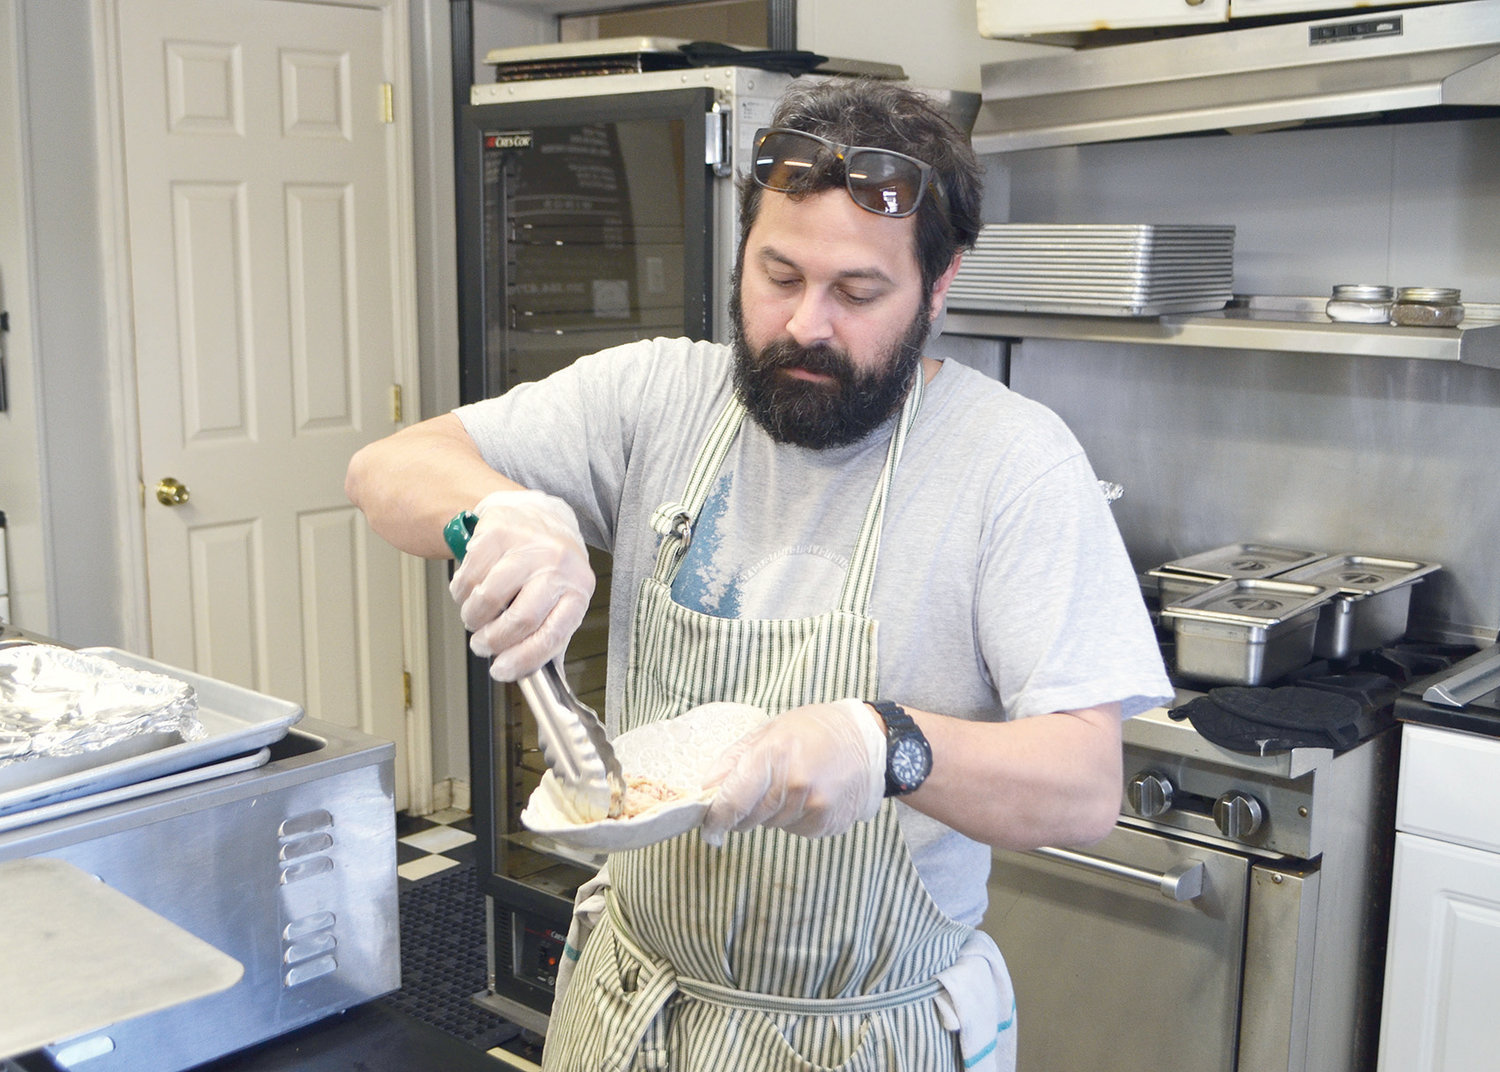 D's Downtown Barbecue owner Darren Hix prepares a dish at the restaurant.